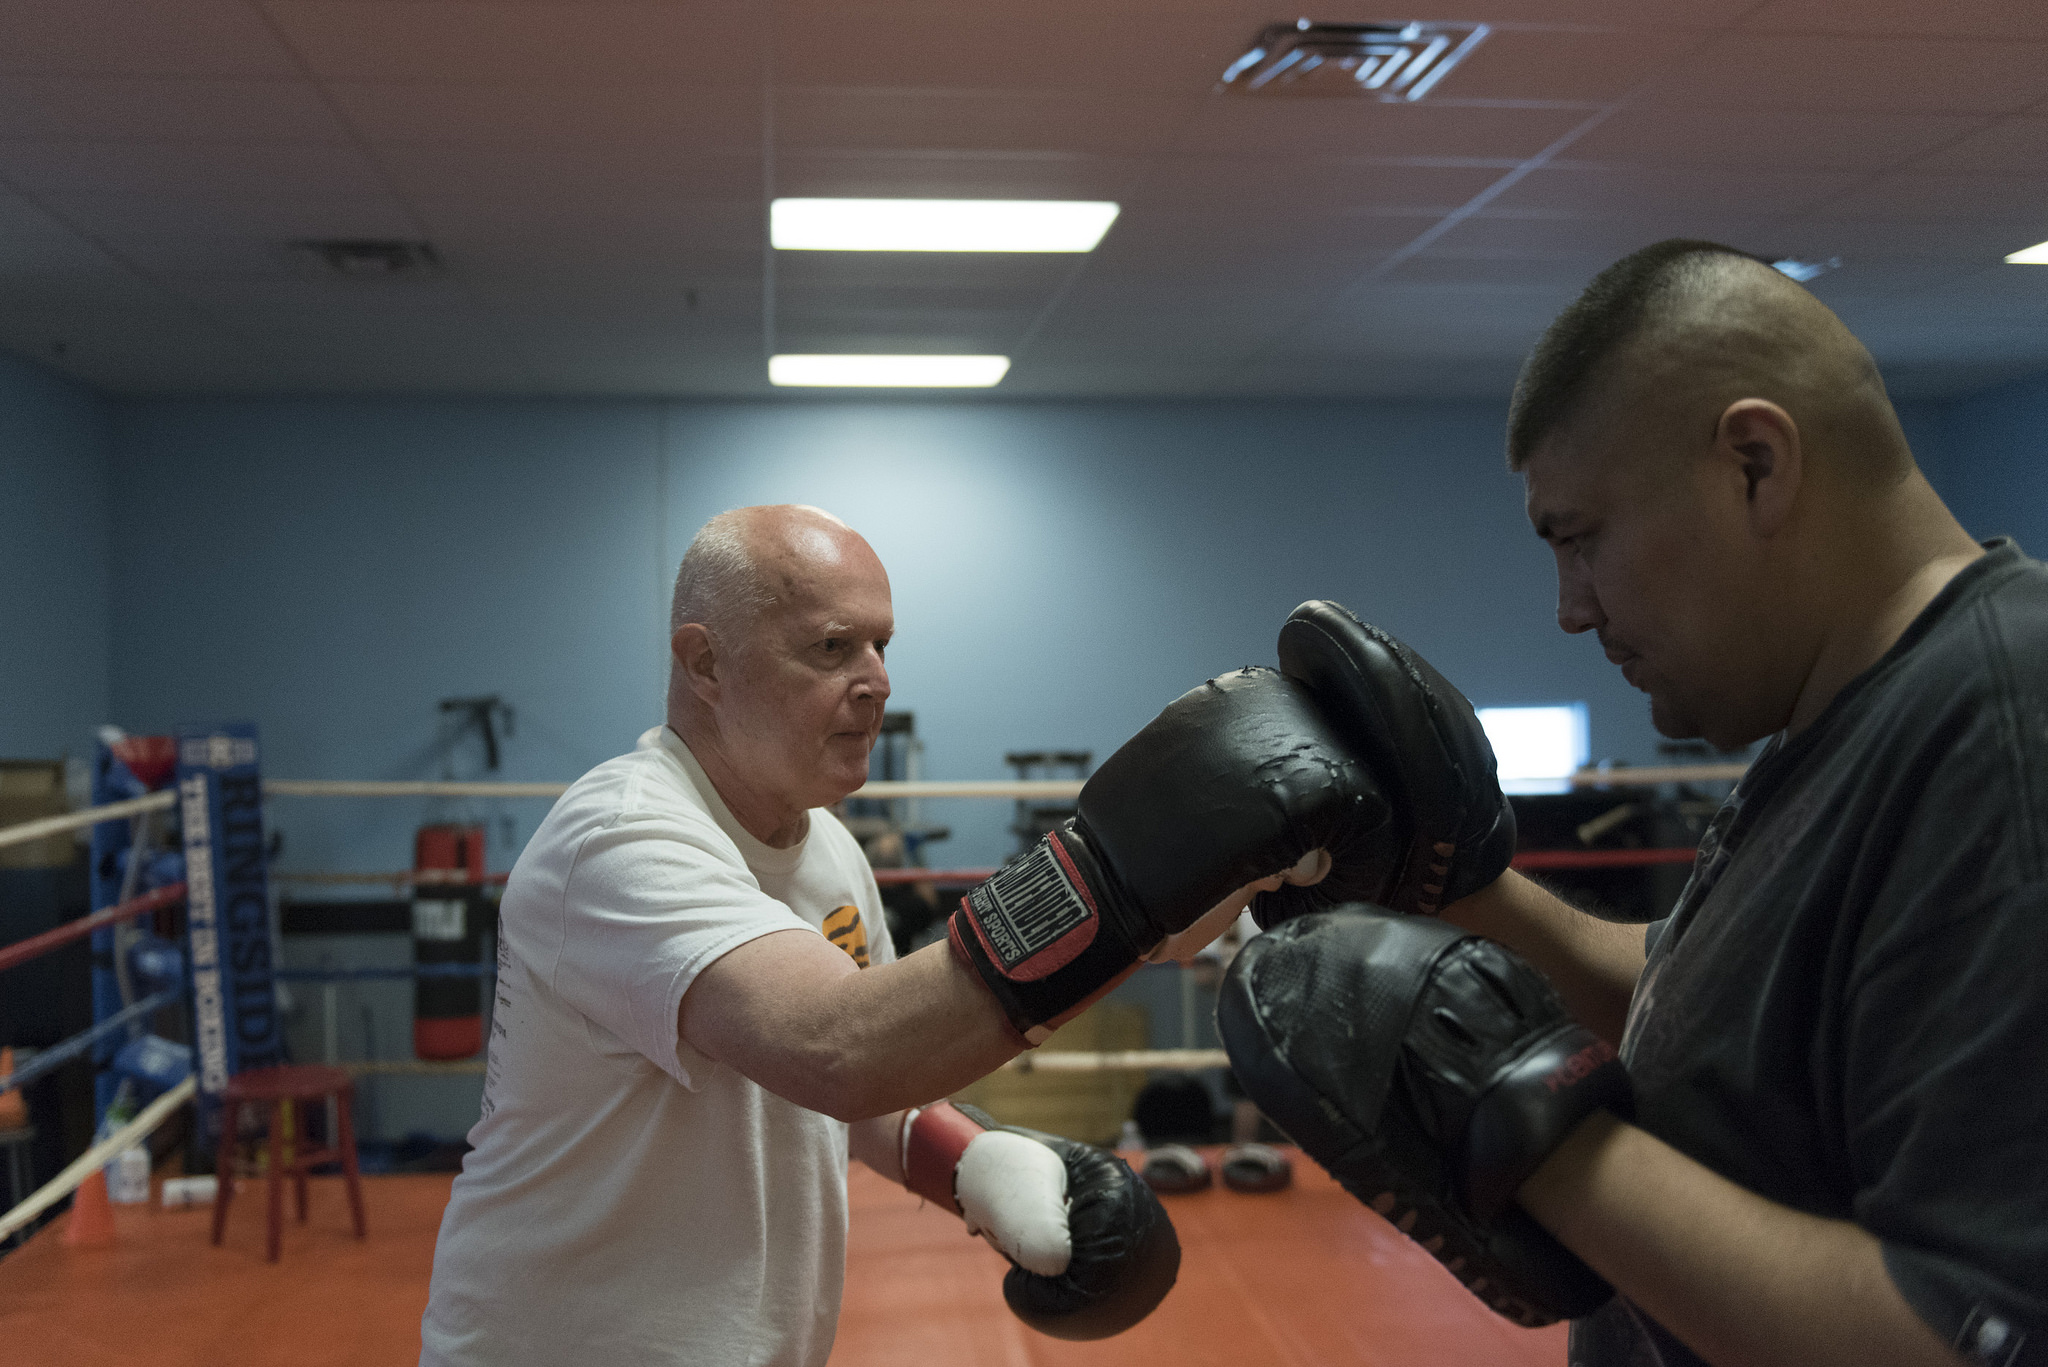 Robert Nicholson, left, does punching exercises with instructor Alvaro Morales during the Rock Steady Boxing Program at Richard Steele Boxing Club in North Las Vegas Monday, June 20, 2016. The therapy helps to slow the effects of Parkinson's disease. Jason Ogulnik/Las Vegas Review-Journal